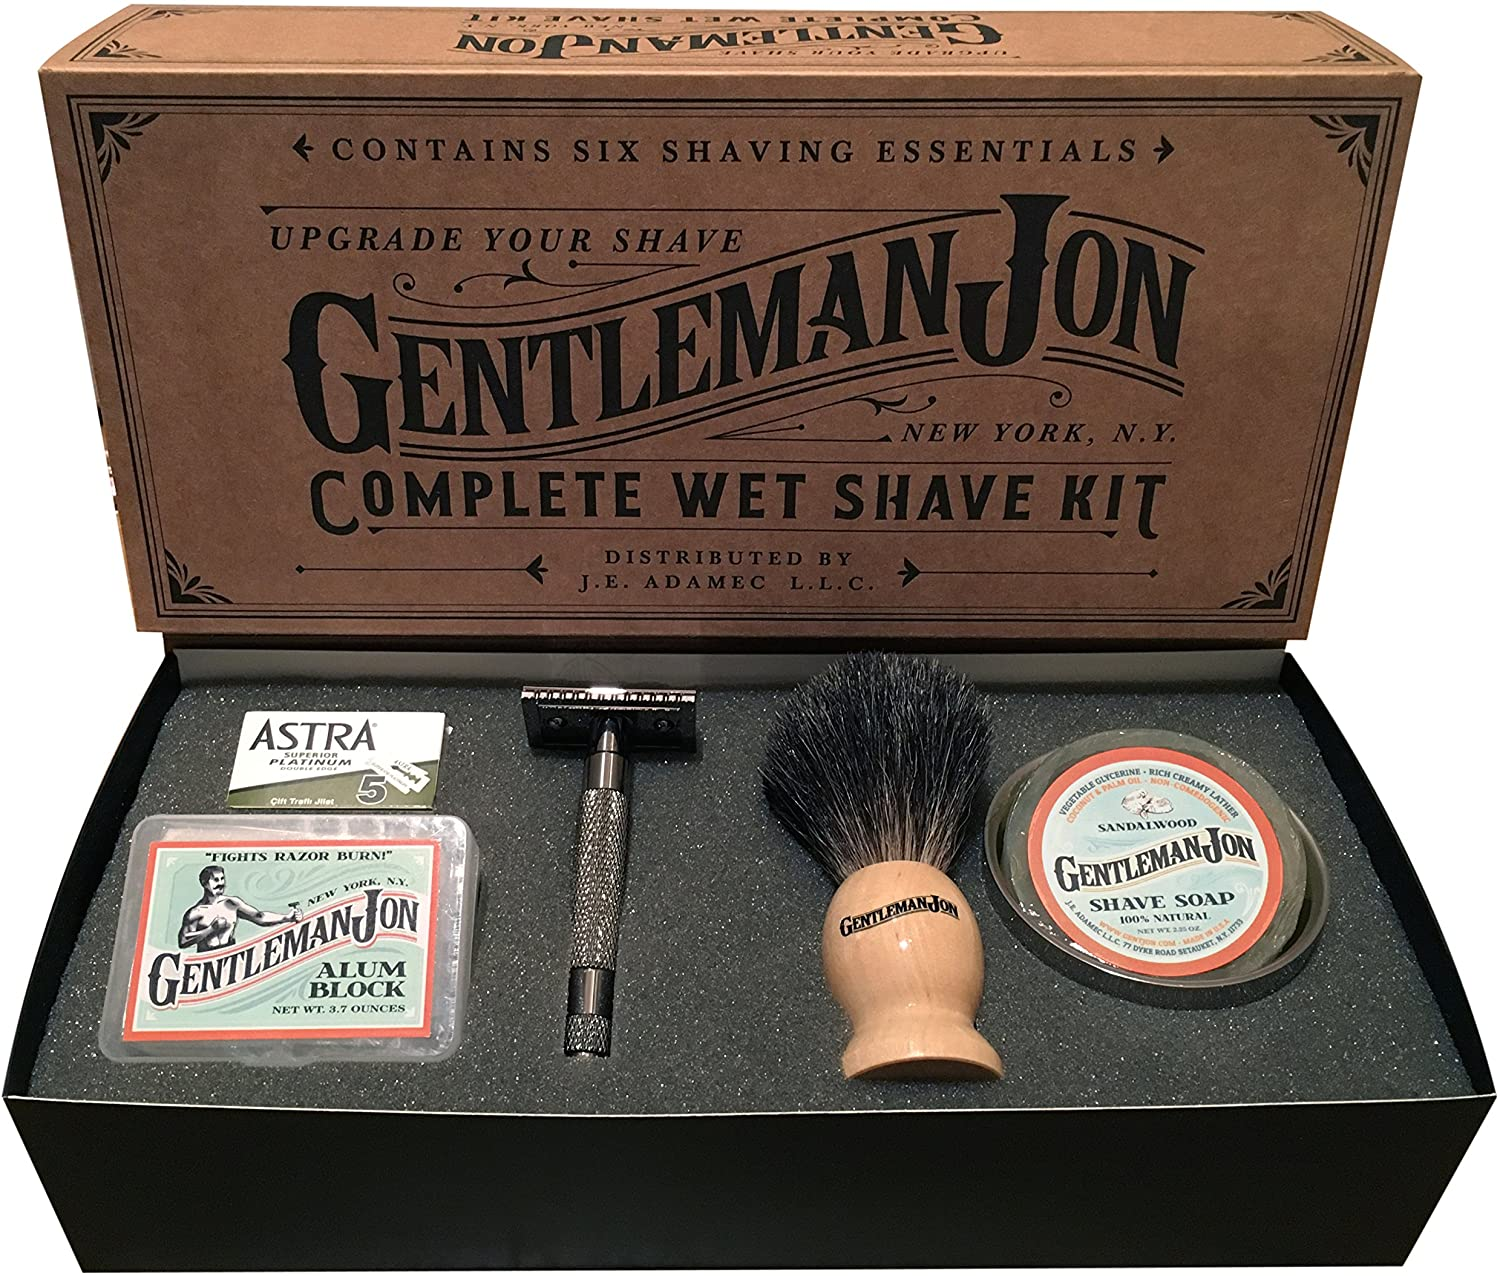 Gentleman Jon Complete Wet Shave Kit with safety razor, badger hairbrush, an alum block, shave soap, steel bowl and Astra razor blade pack